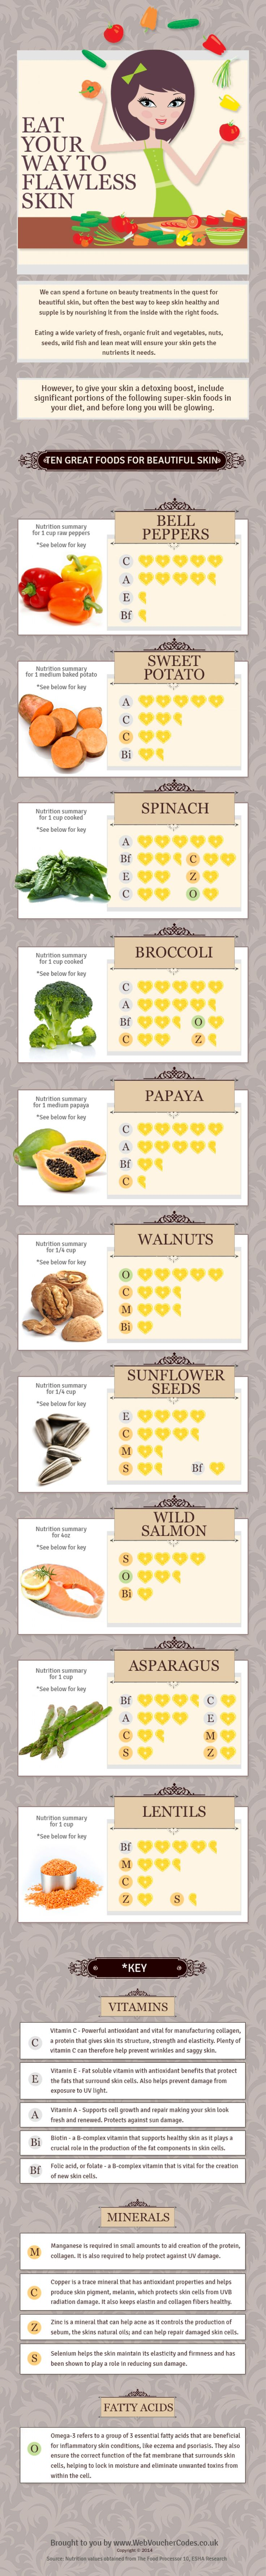 Top Ten Foods for Beautiful Skin Infographic #Beauty #Skin #Nutrition #Food